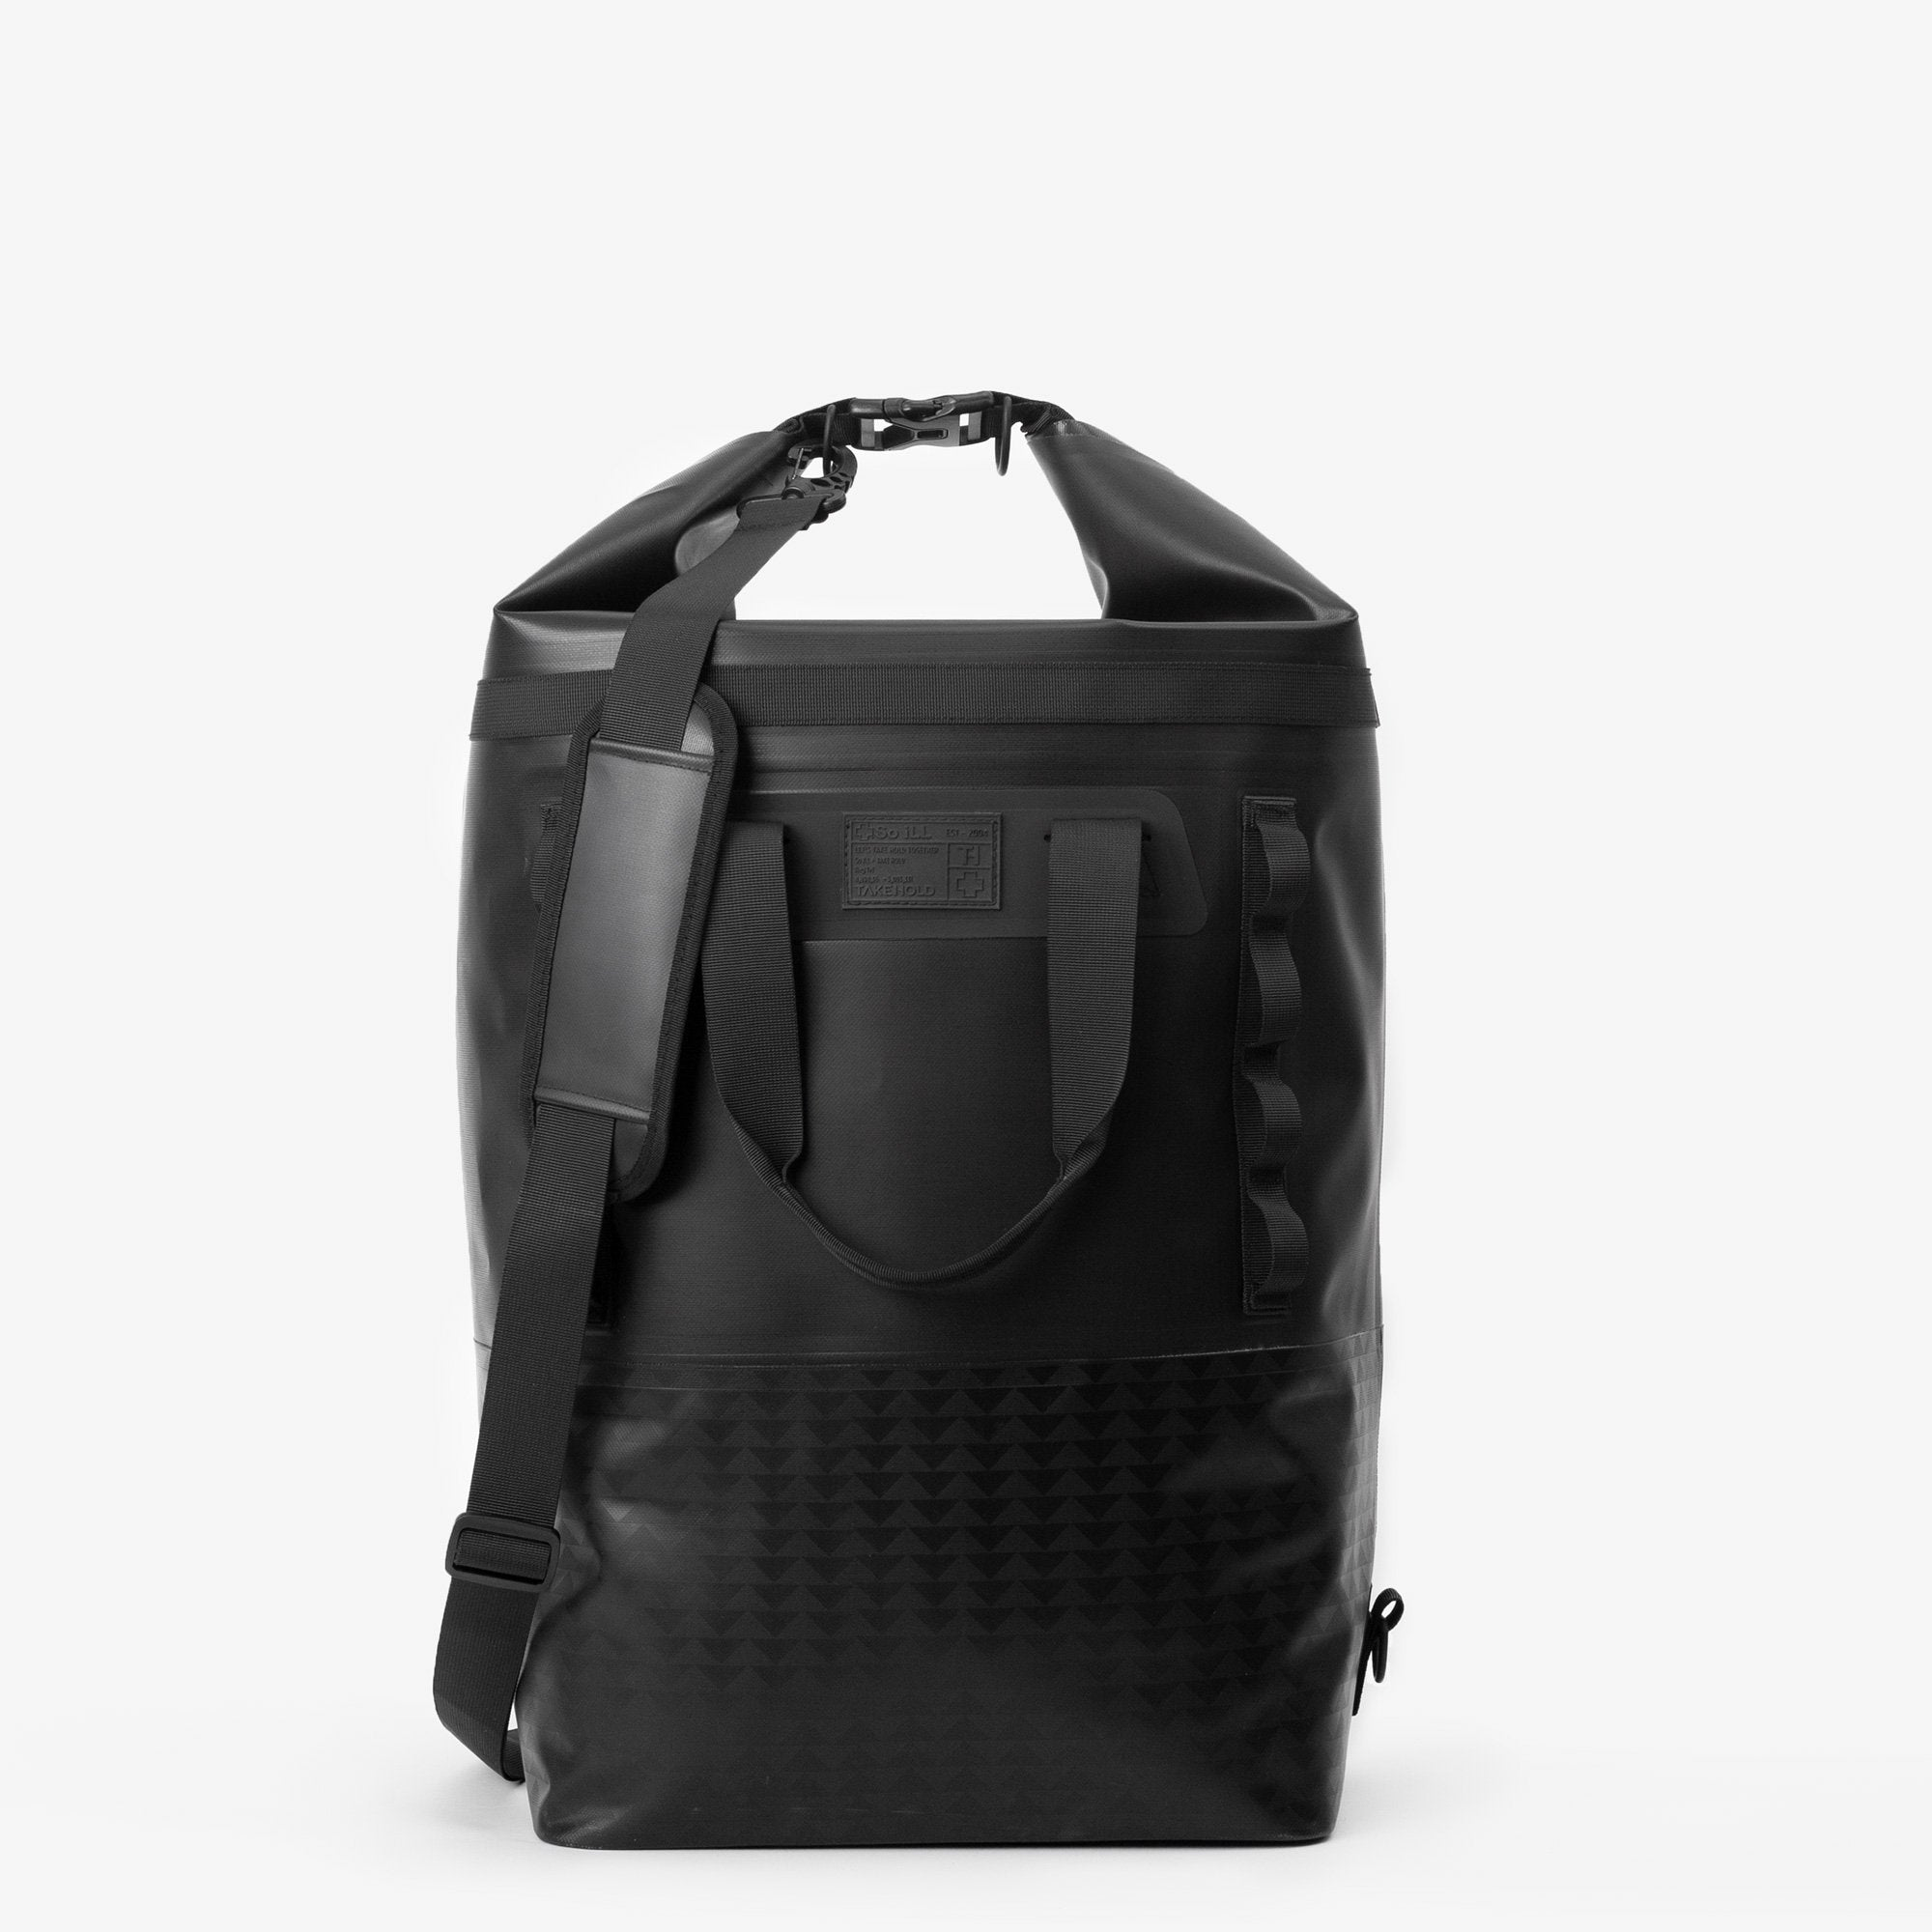 So iLL On the Roam, Dirt Bag 45L – Black Bags